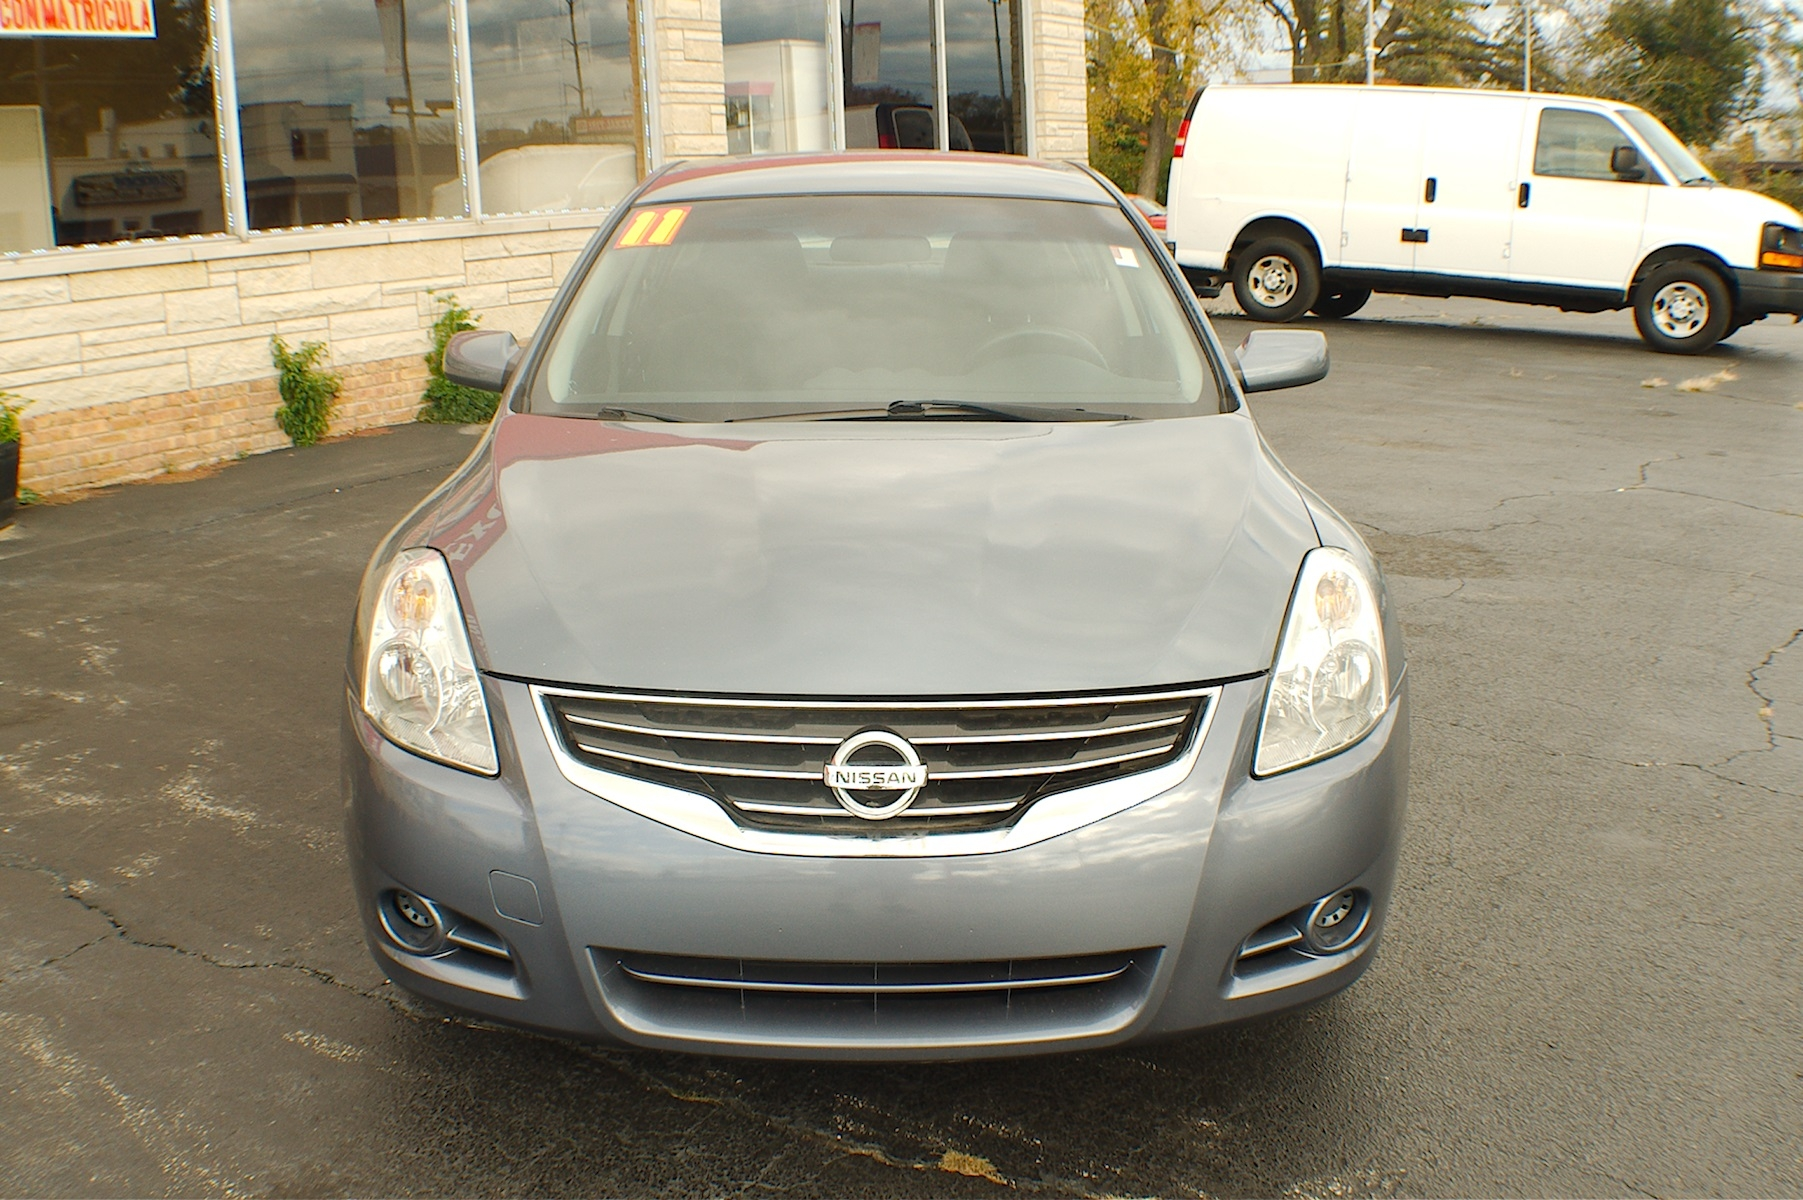 2011 Nissan Altima S Blue Sedan Used Car Sale